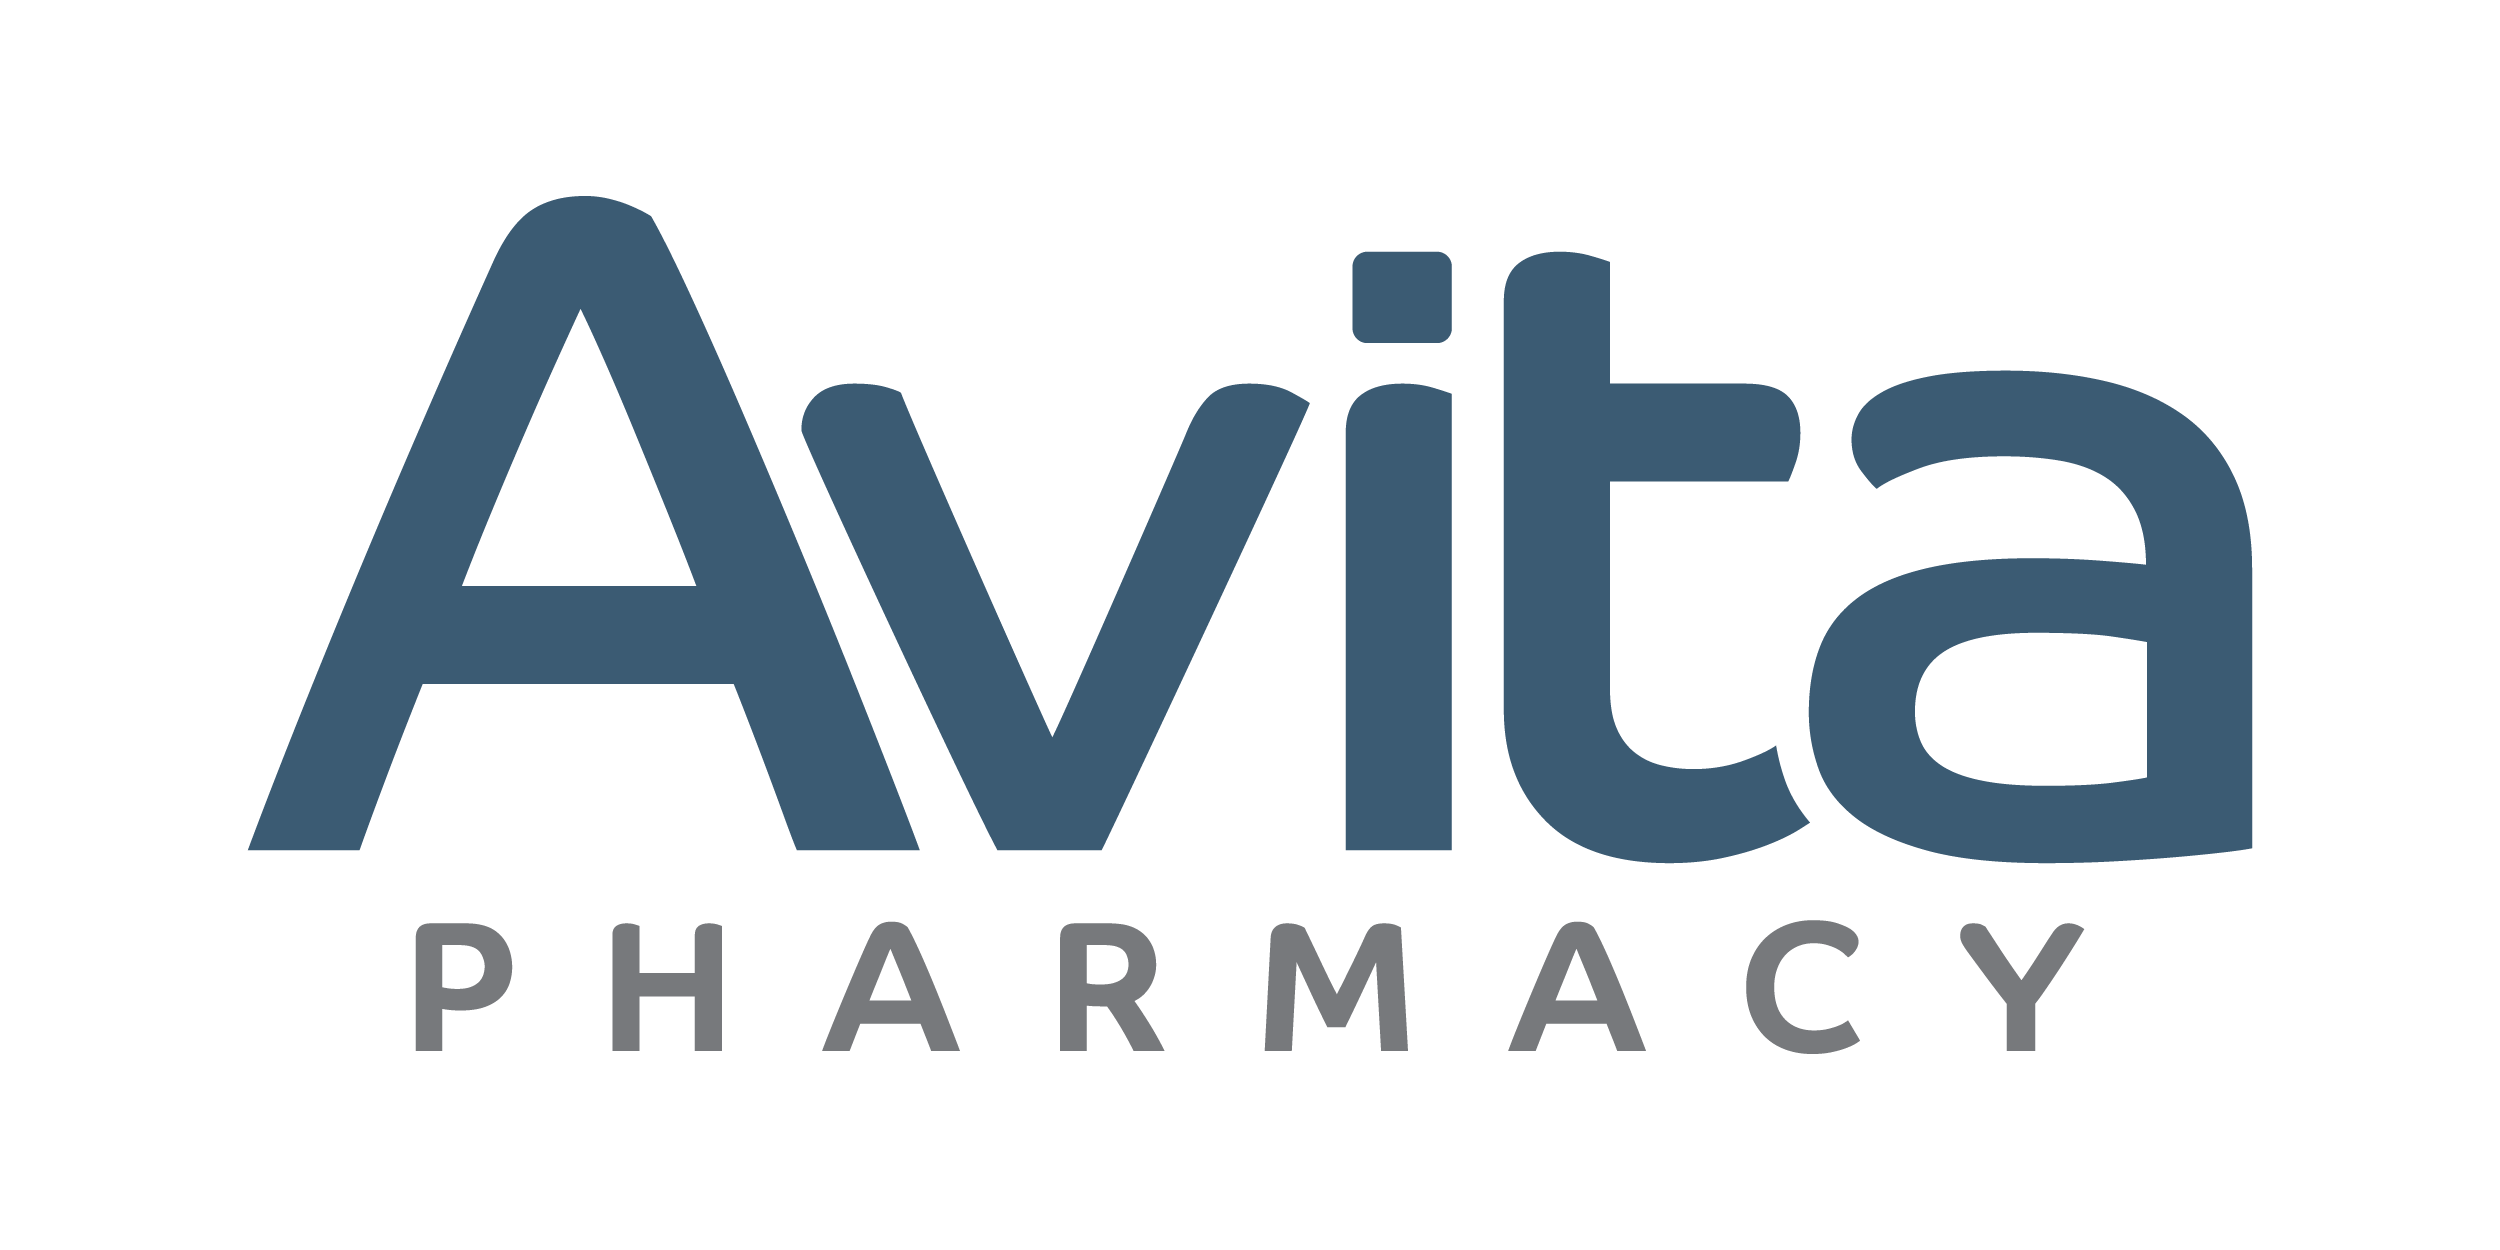 Avita Pharmacy - New Logo - No Tag 2 color.png